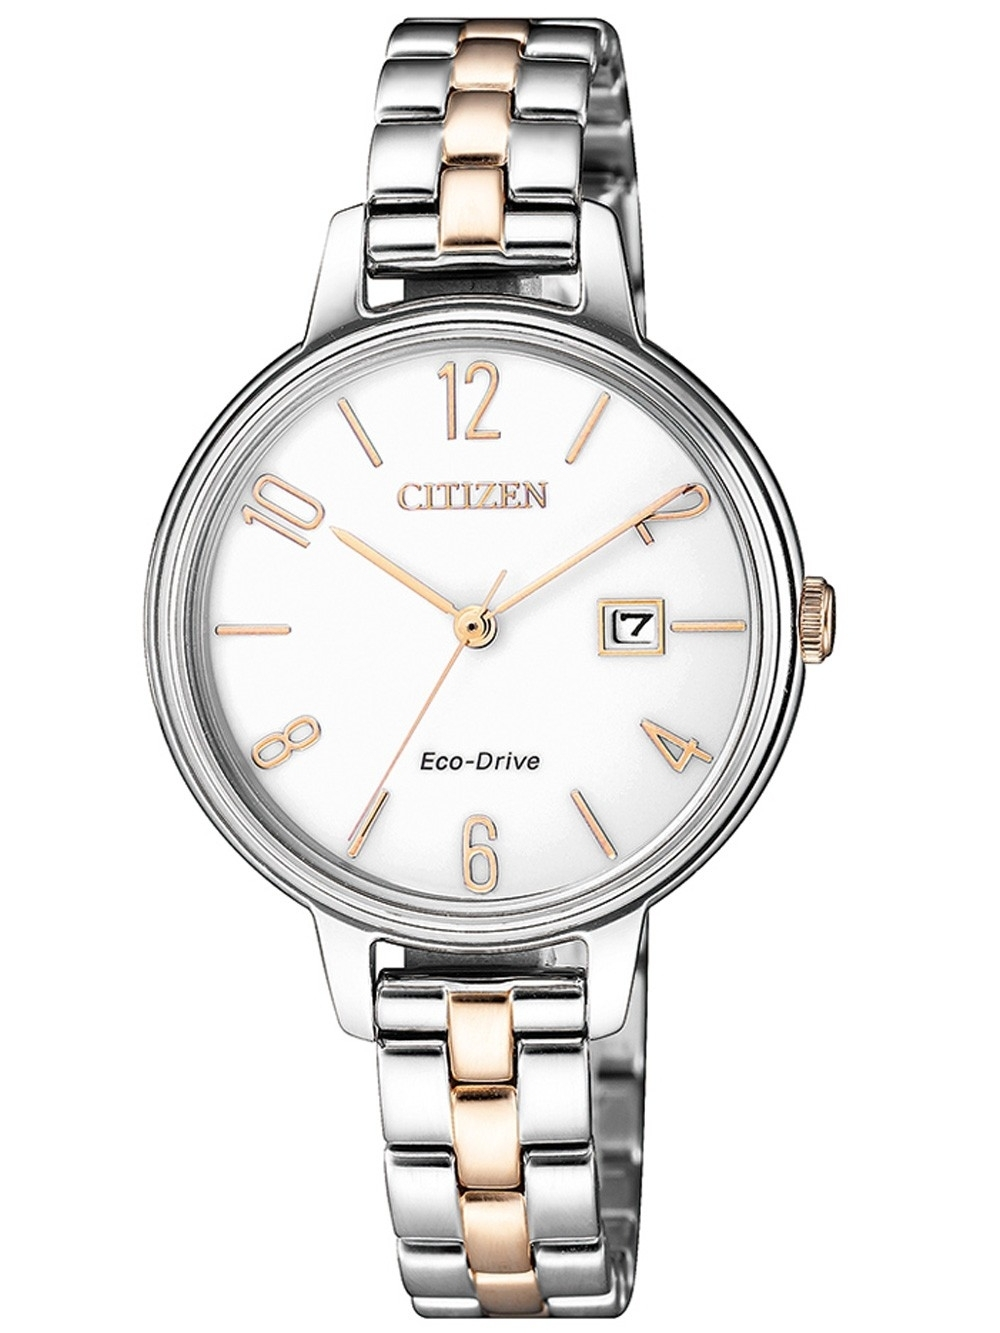 Ceas de dama Citizen EW2446-81A Eco-Drive 31mm 5ATM